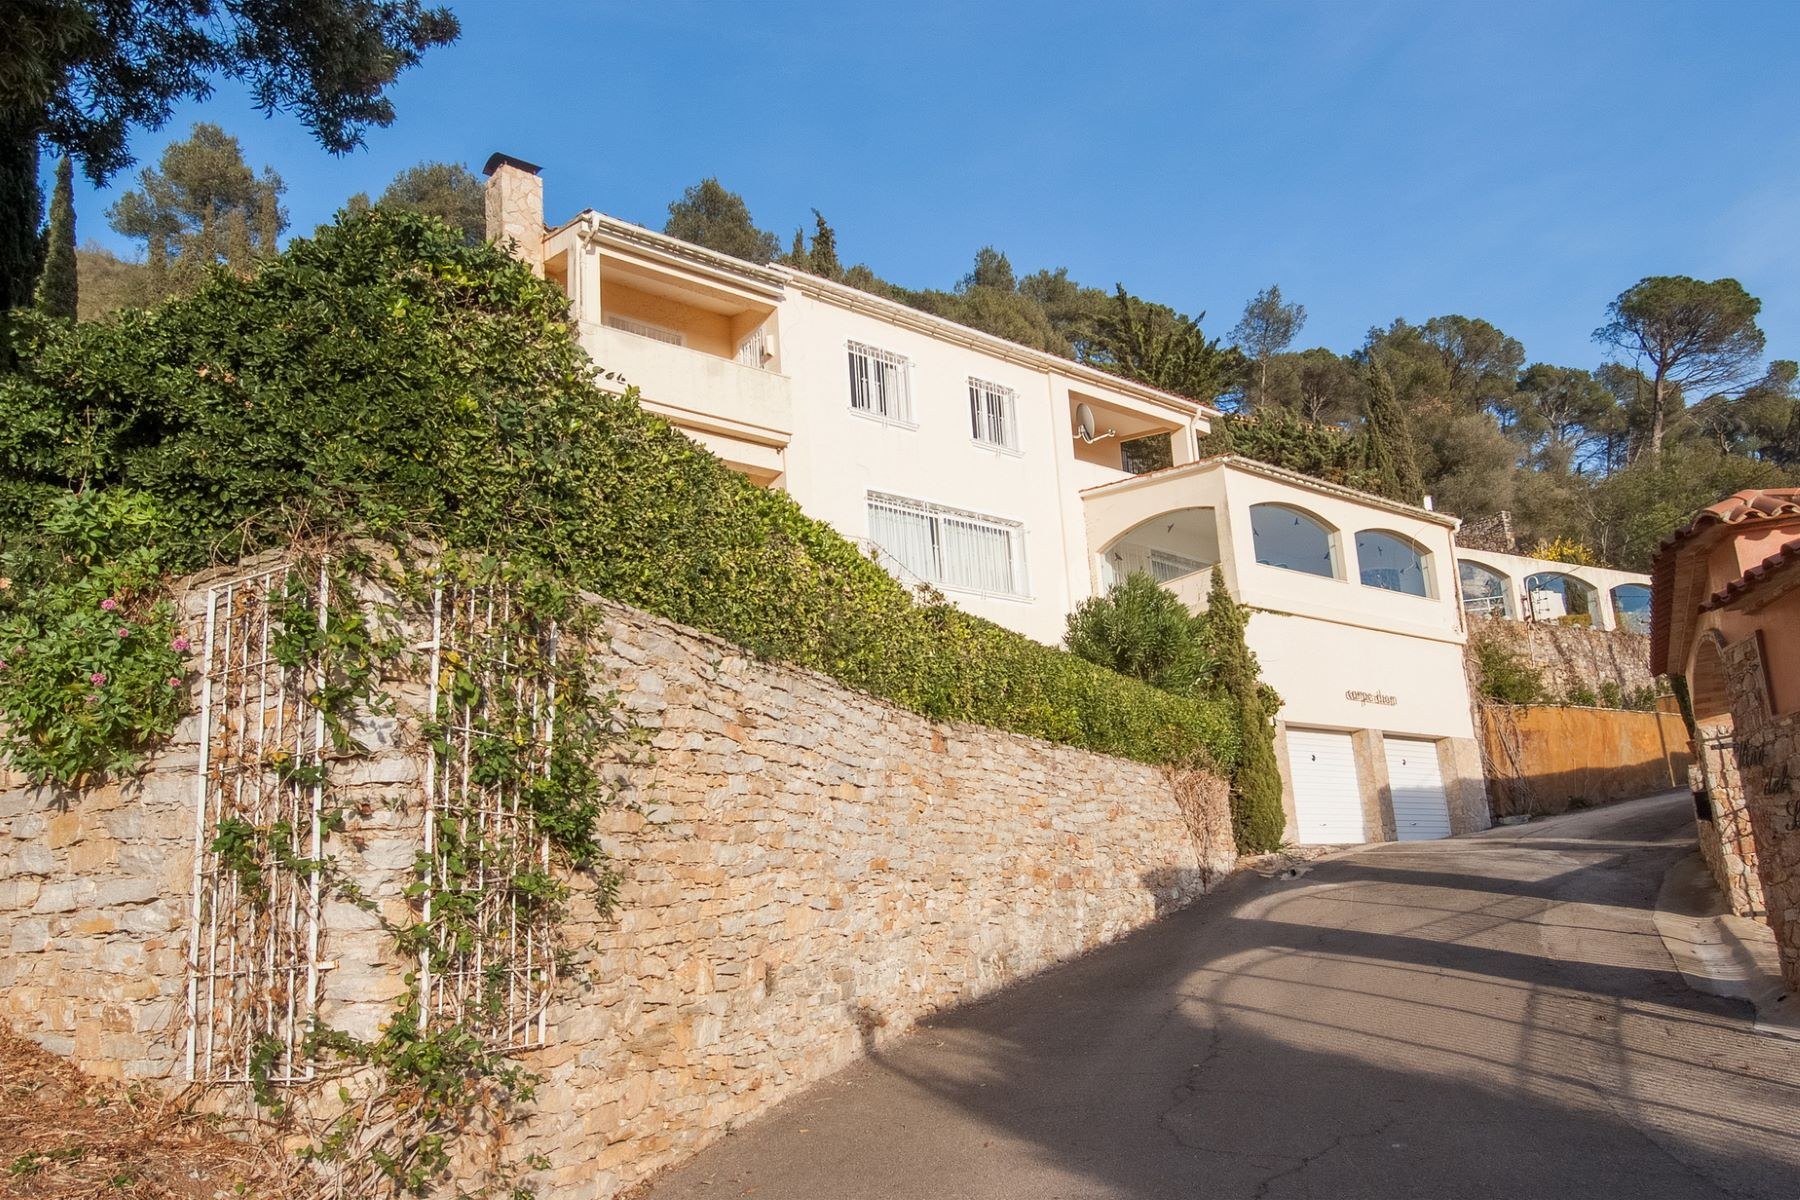 Single Family Home for Sale at House for sale in Ses Costes, Aiguablava Begur, Costa Brava, 17255 Spain